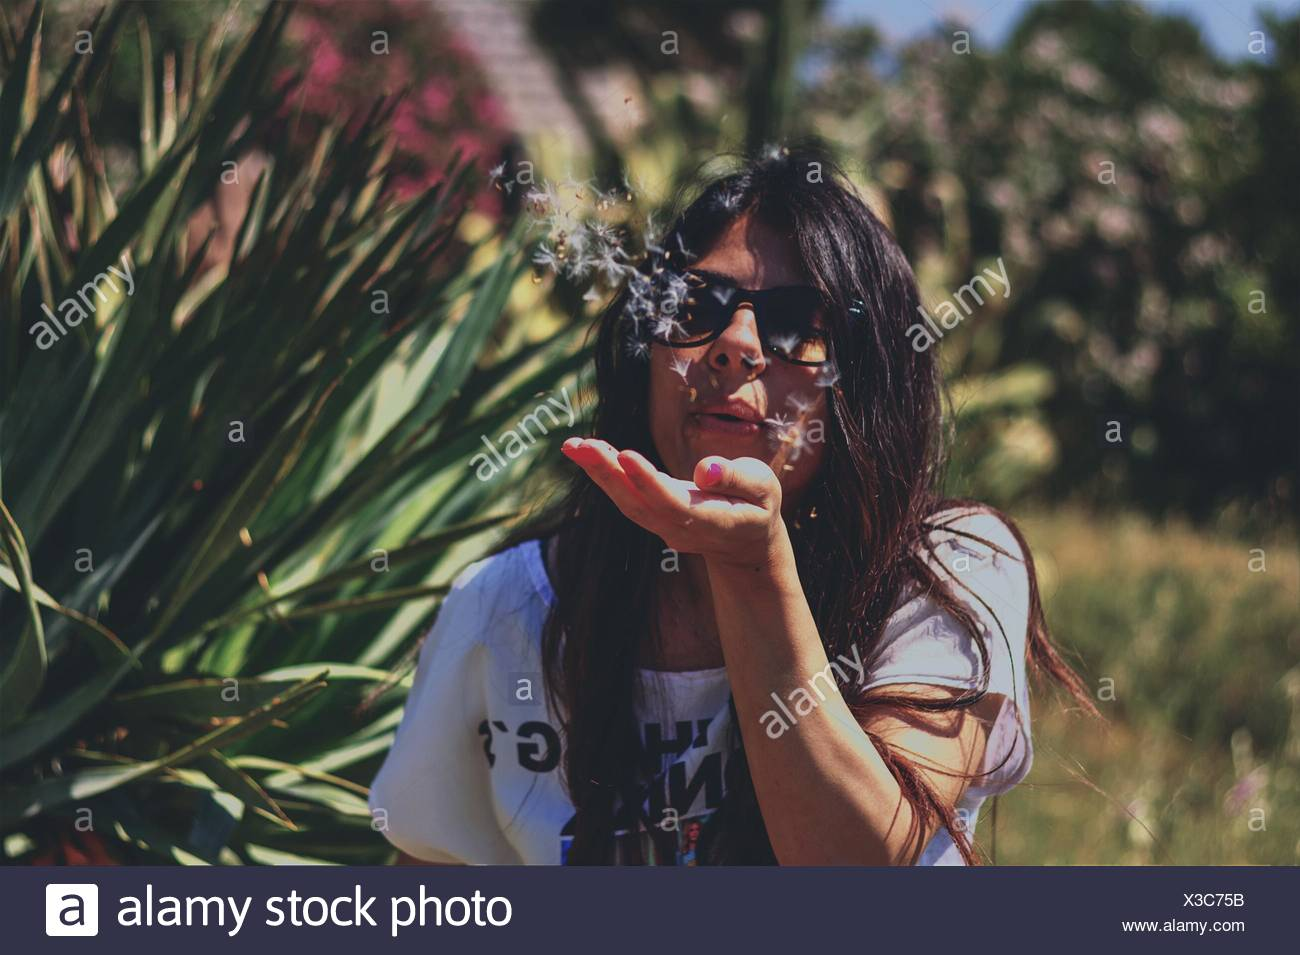 Front View Of Young Woman Blowing Dandelion Seeds Over Palm - Stock Image